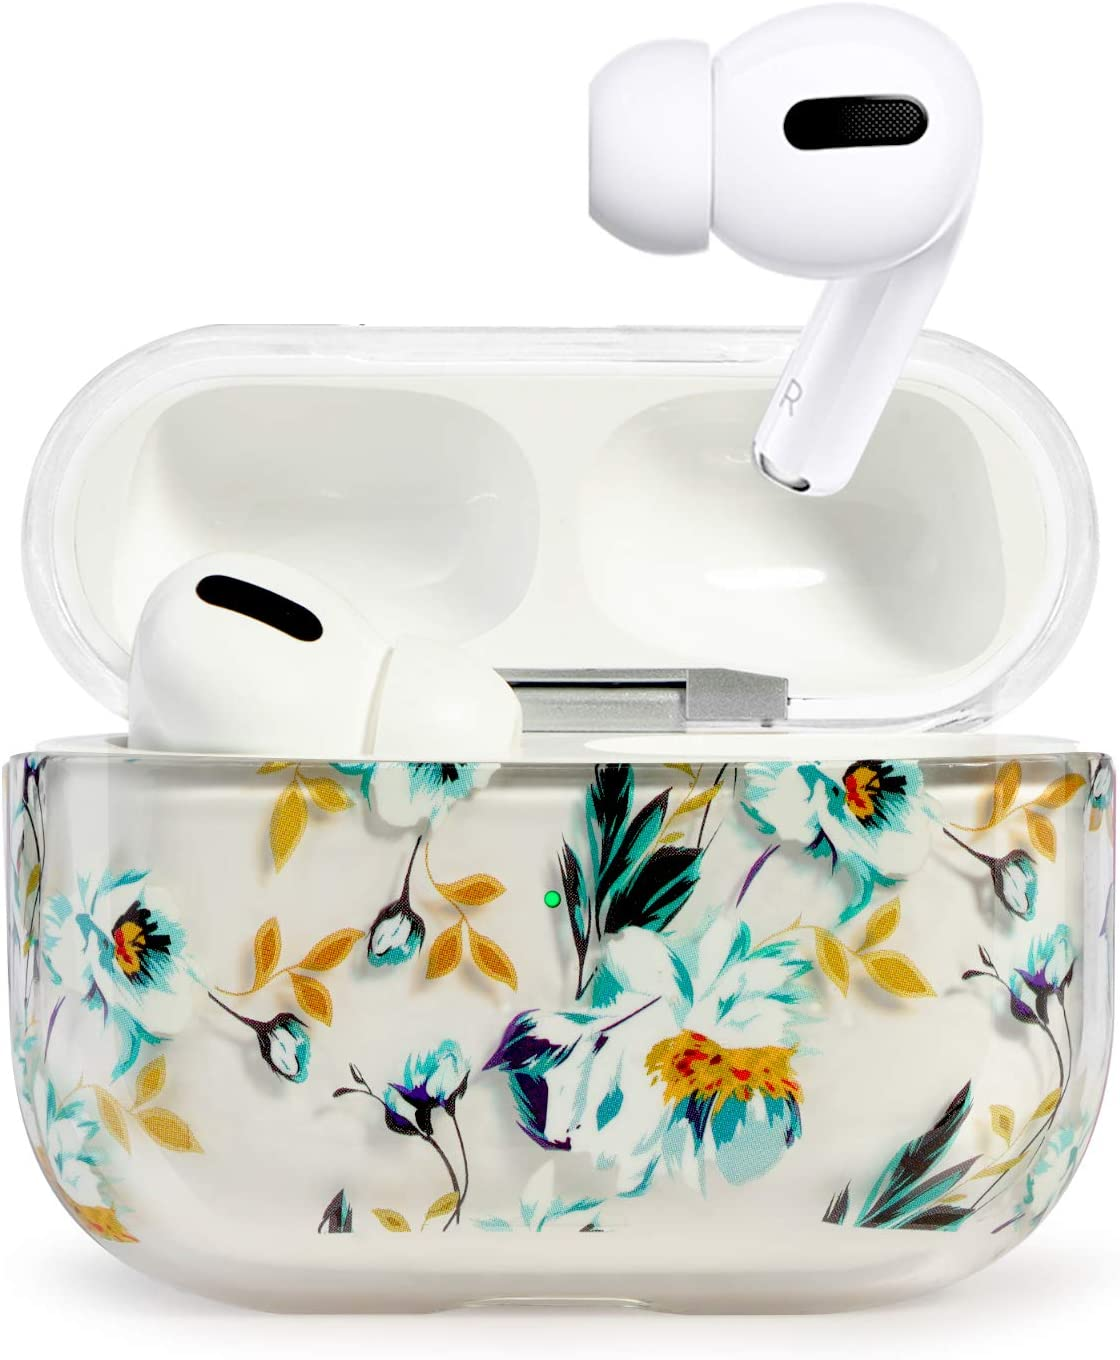 AirPods PRO Case, HIDAHE Cute AirPods PRO Case, Pattern Design AirPods PRO Cover Protective AirPods PRO Accessories Kit Compatiable with Apple AirPods PRO Case, Flower